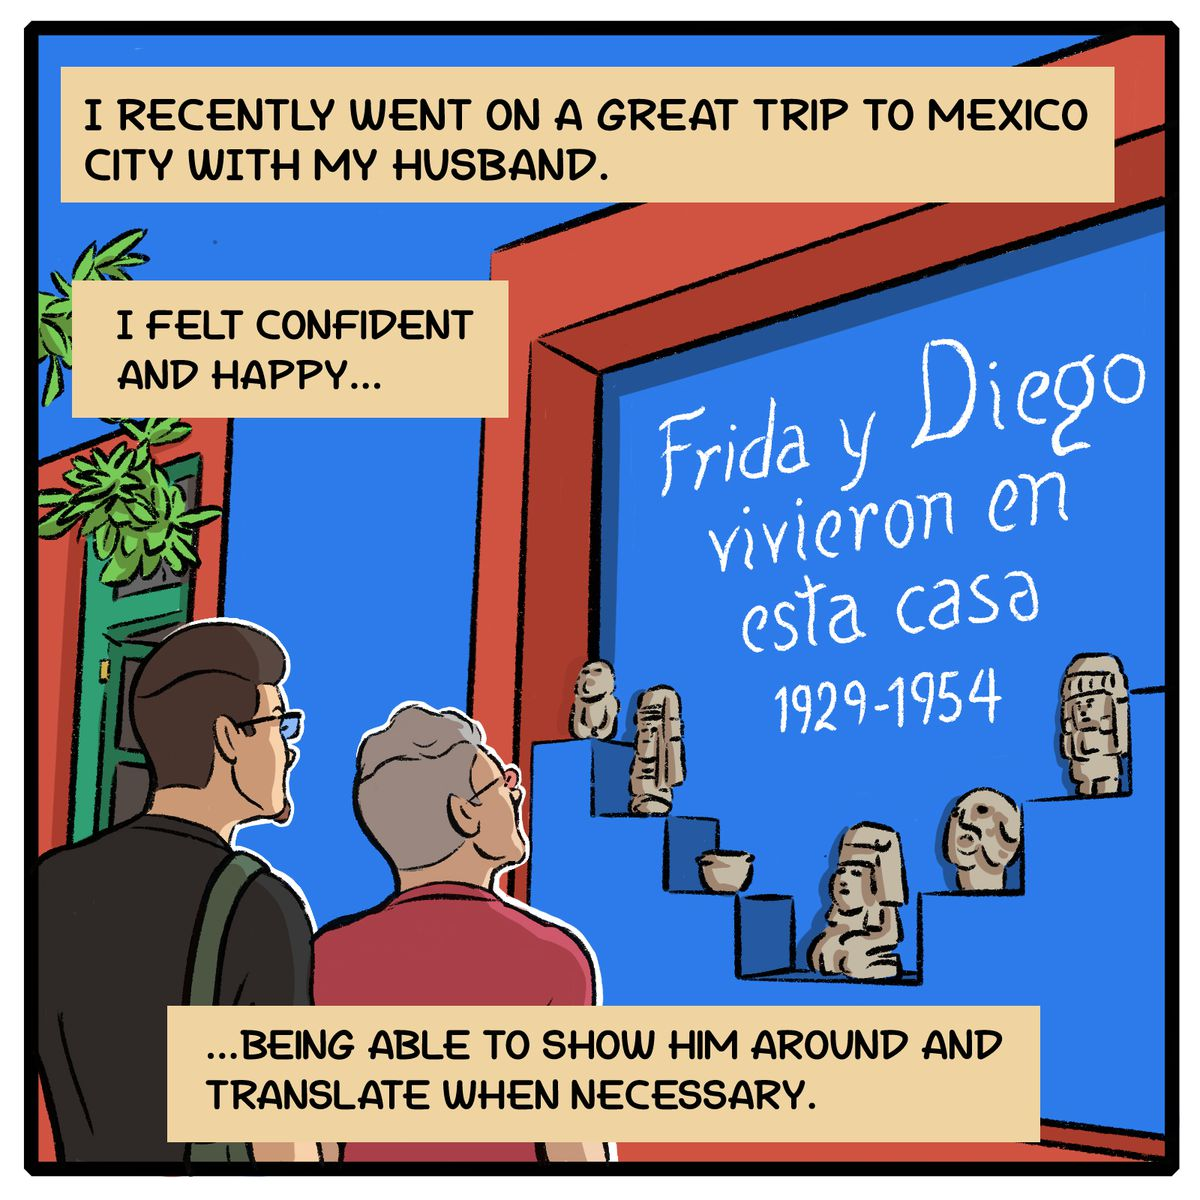 I recently went on a great trip to Mexico City with my husband. I felt confident and happy ... being able to show him around and translate when necessary.